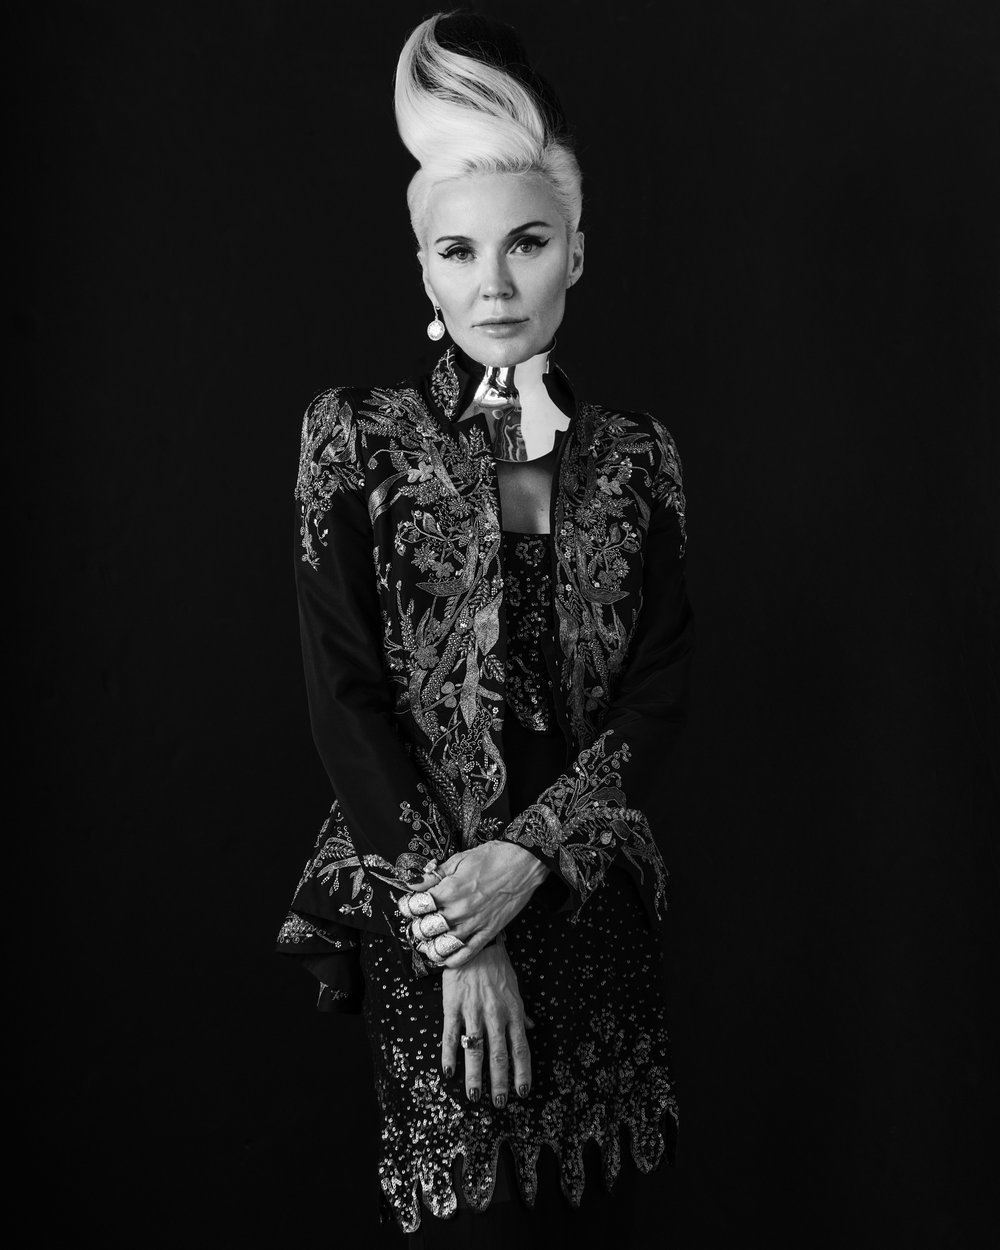 Jacket: Alexander McQueen  Dress: Valentino Haute Couture (from the personal archive of Daphne Guinness)  Neckpiece: Balenciaga